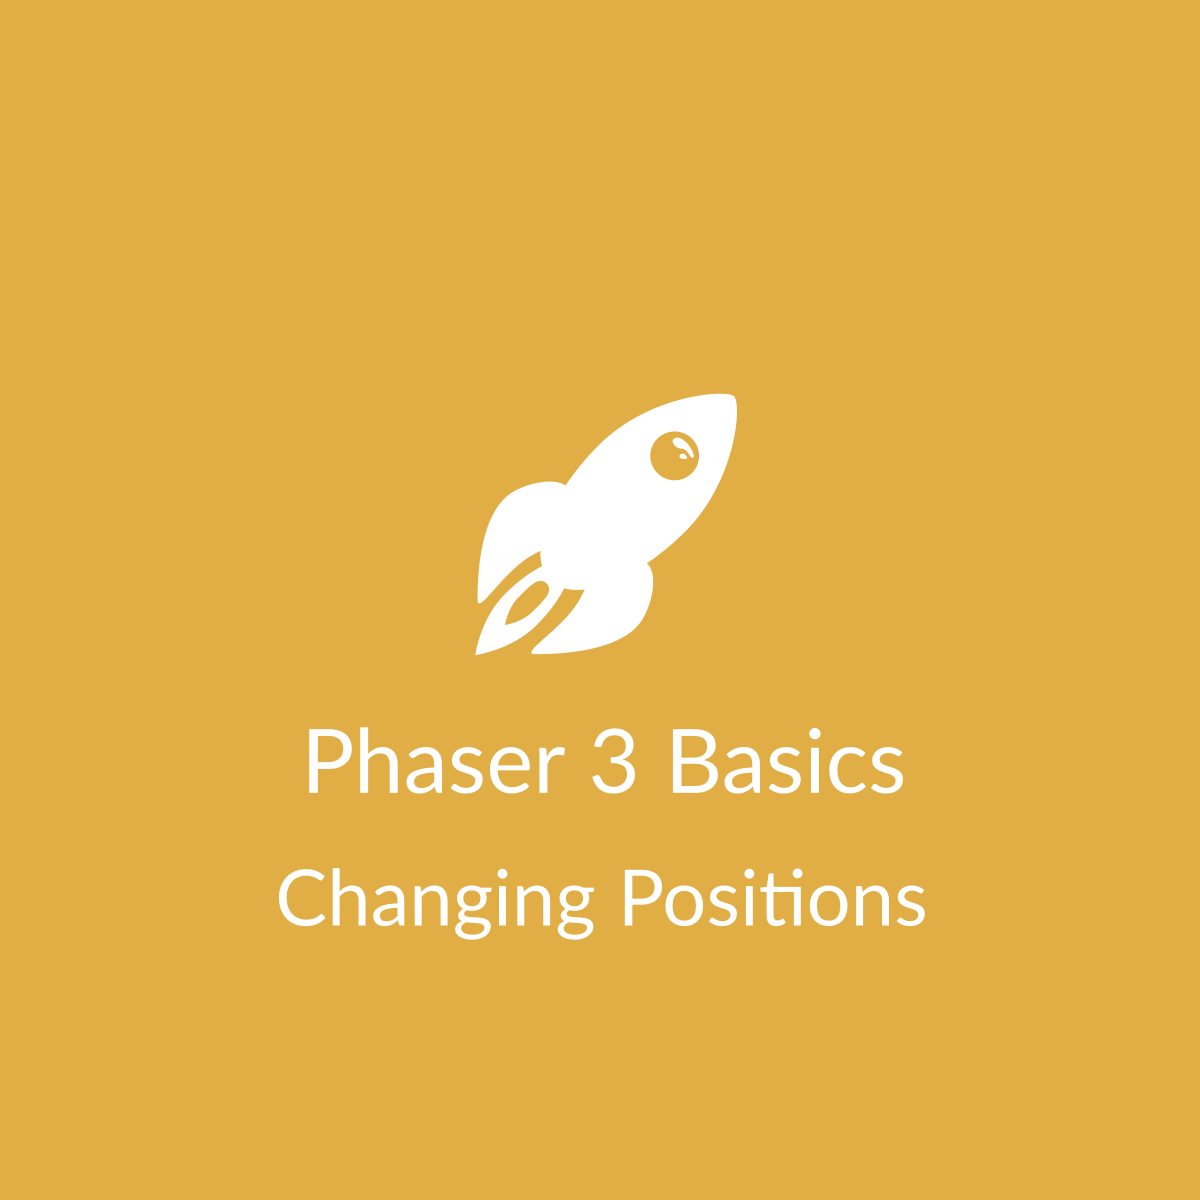 Phaser 3 Basics: Changing Positions